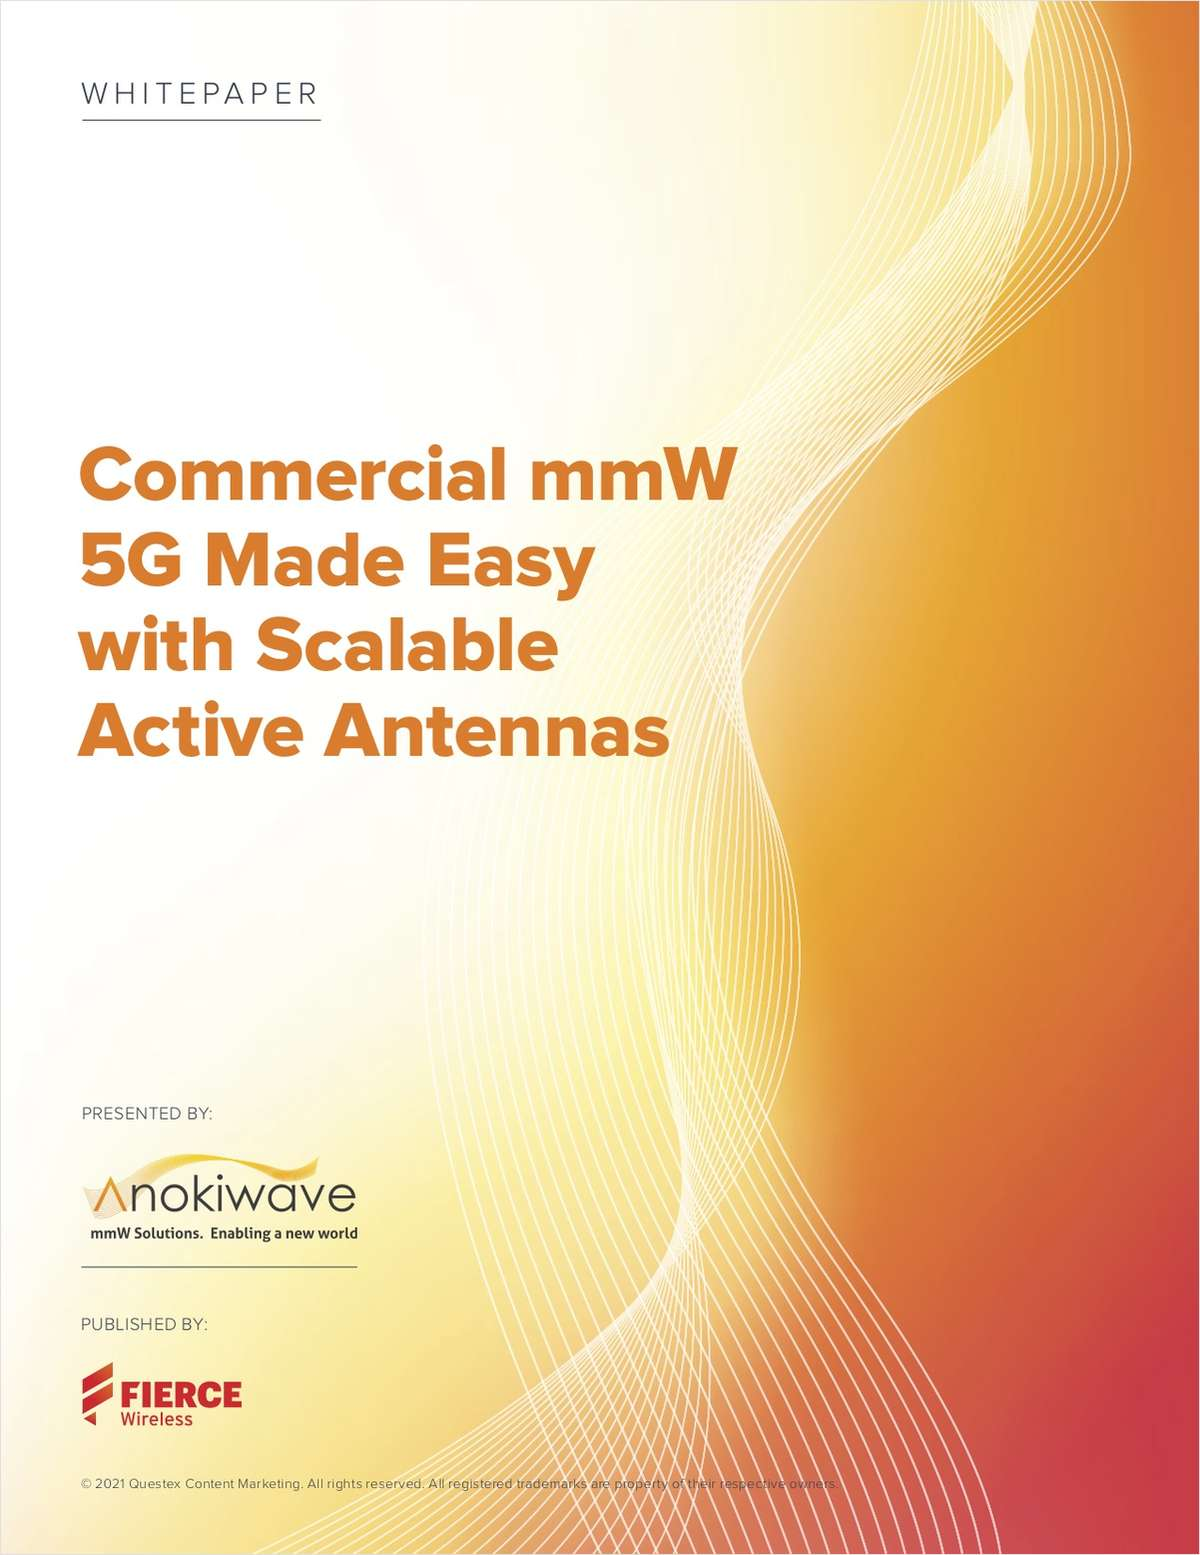 Commercial mmW 5G Made Easy with Scalable Active Antennas